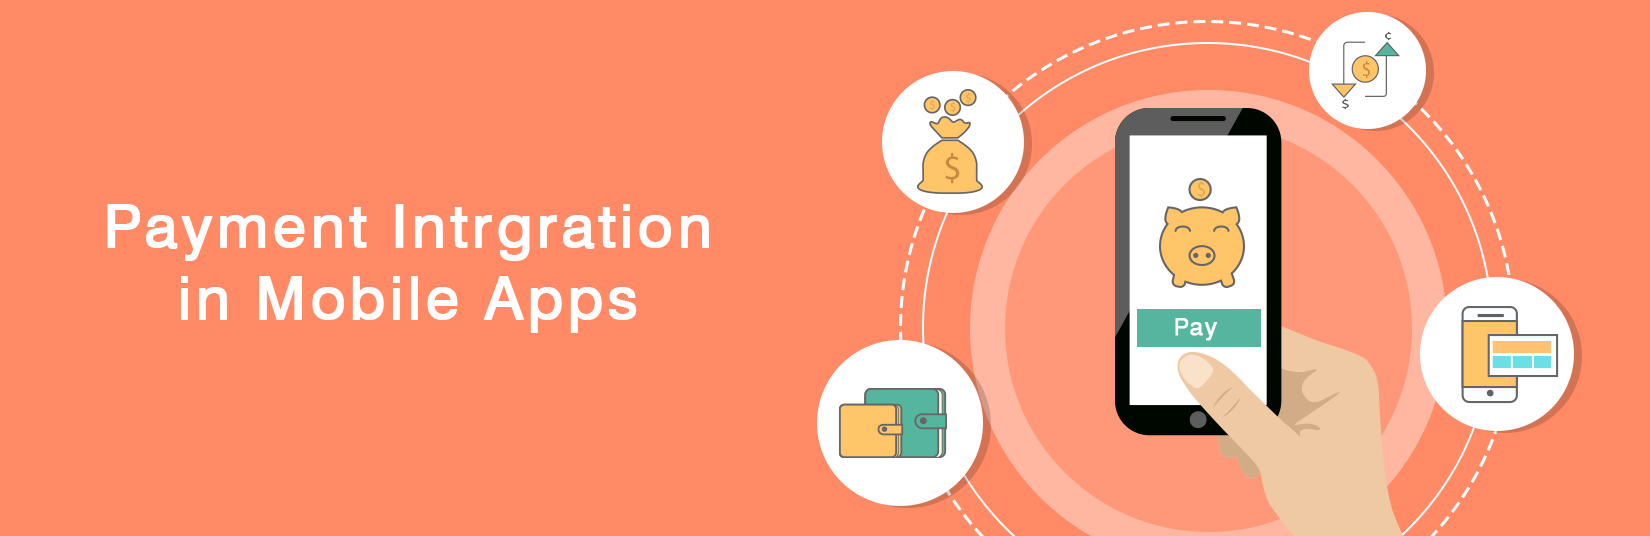 Payment-Gateway-Integration-in-Mobile-Apps